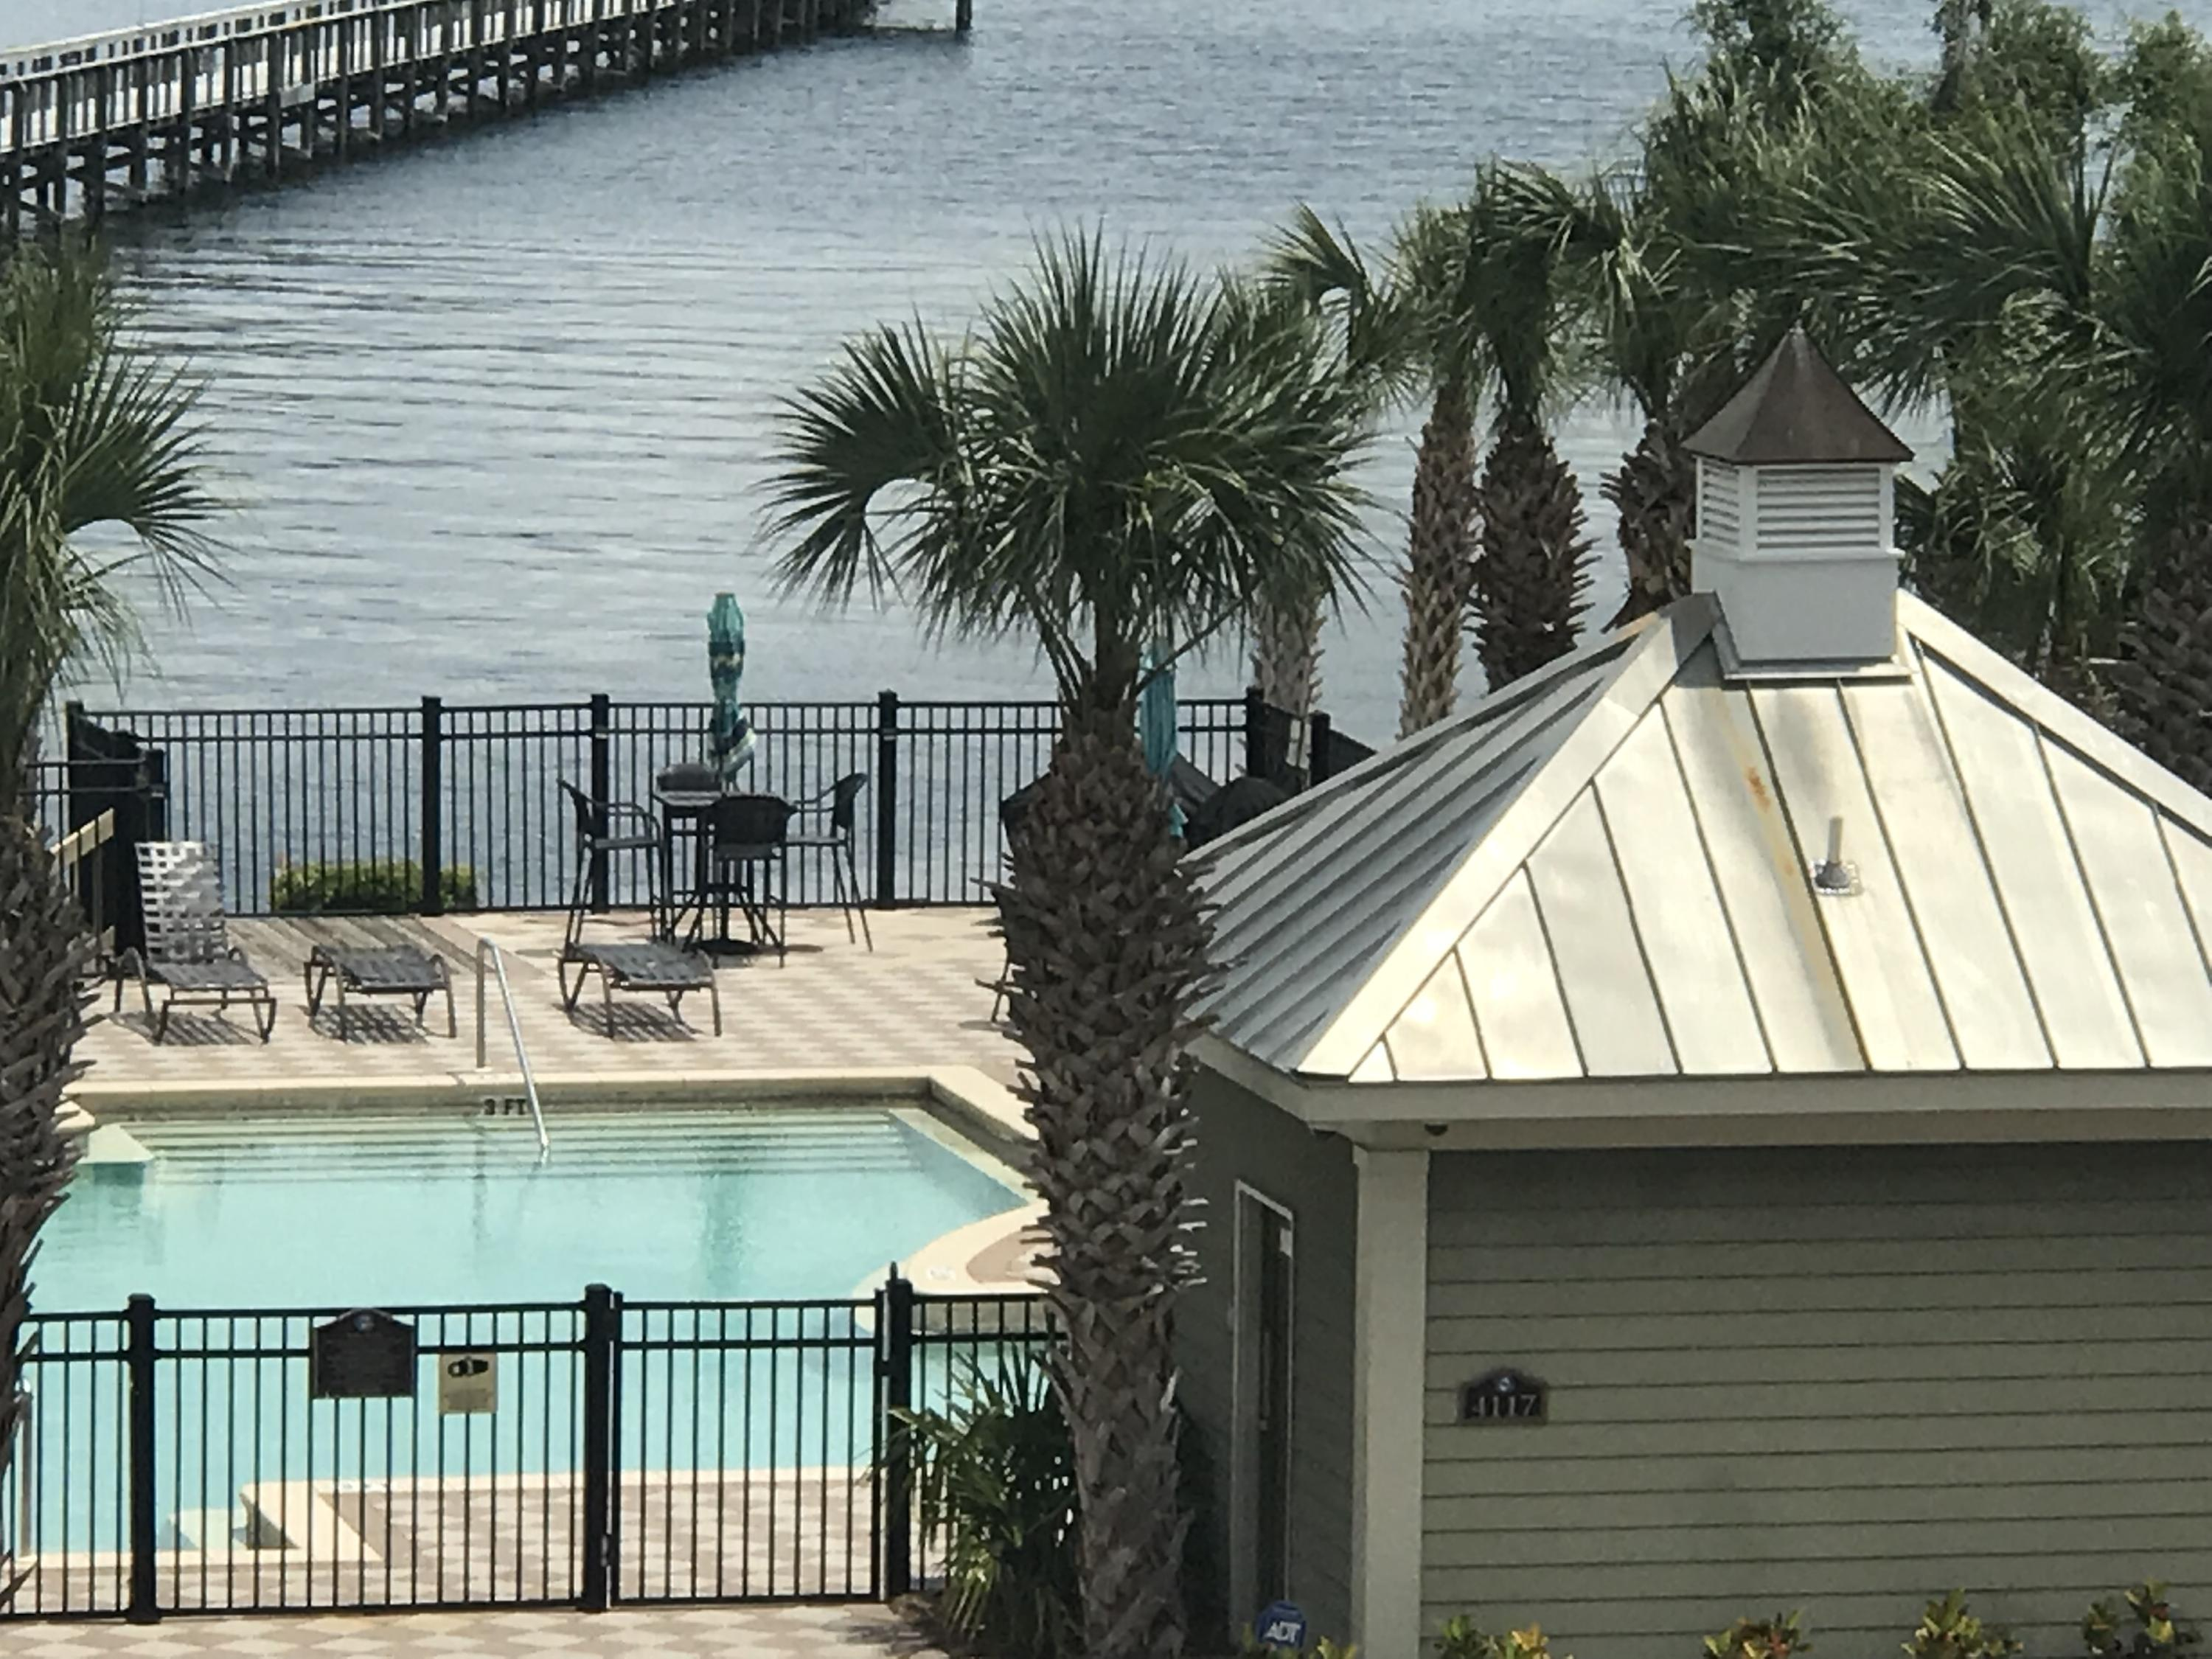 Welcome to Waterhaven! Beautiful bay front residential community with a seasonally heated pool and no short term rentals. This third floor unit has no upstairs or connecting wall neighbors for your peaceful, quiet enjoyment and the option of taking the stairs or the elevator. The kitchen is equipped with upscale appliances to include Sub Zero refrigerator, wine cooler, and ice maker, Viking 6 burner gas range and Bosch dishwasher. Granite counters in the kitchen and baths and Brookhaven custom cabinets with a large pantry. A tankless water heater was added just last year! The complex maintains a boat ramp, boat yard and community dock for its residents. A truly unique, waterfront community! Verify measurements if important.